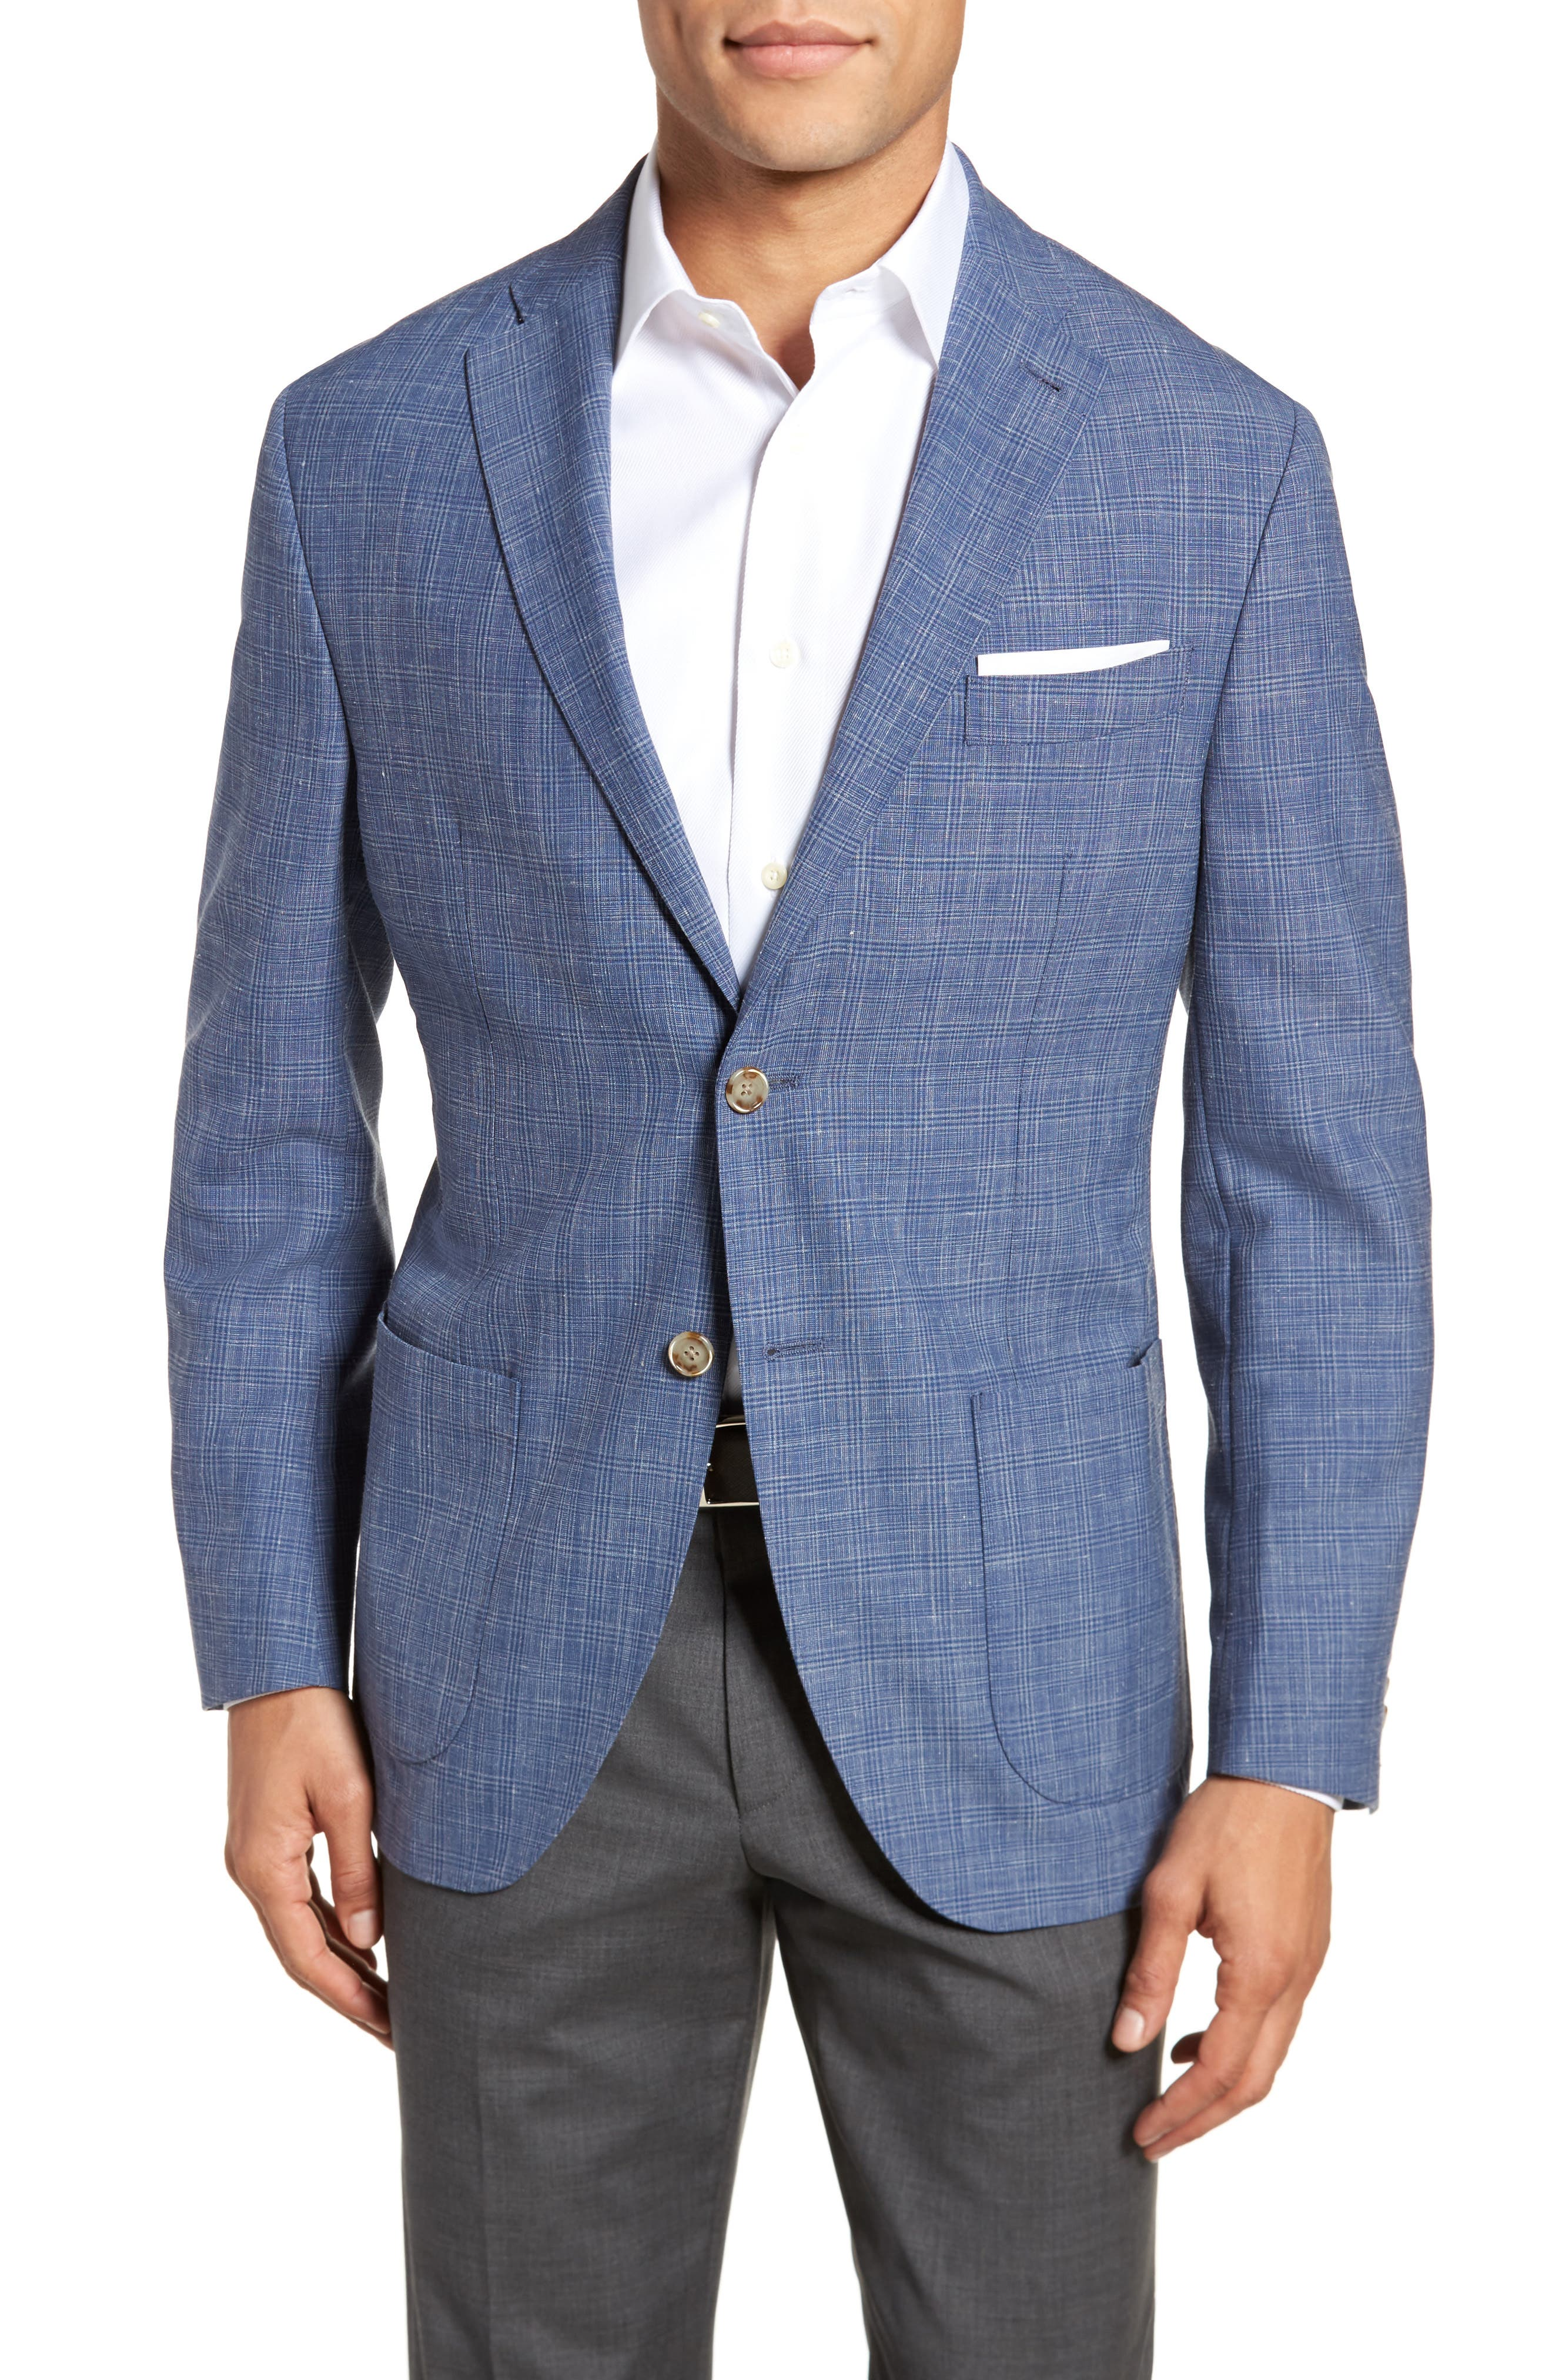 Trent Trim Fit Plaid Wool Blend Sport Coat,                             Main thumbnail 1, color,                             400